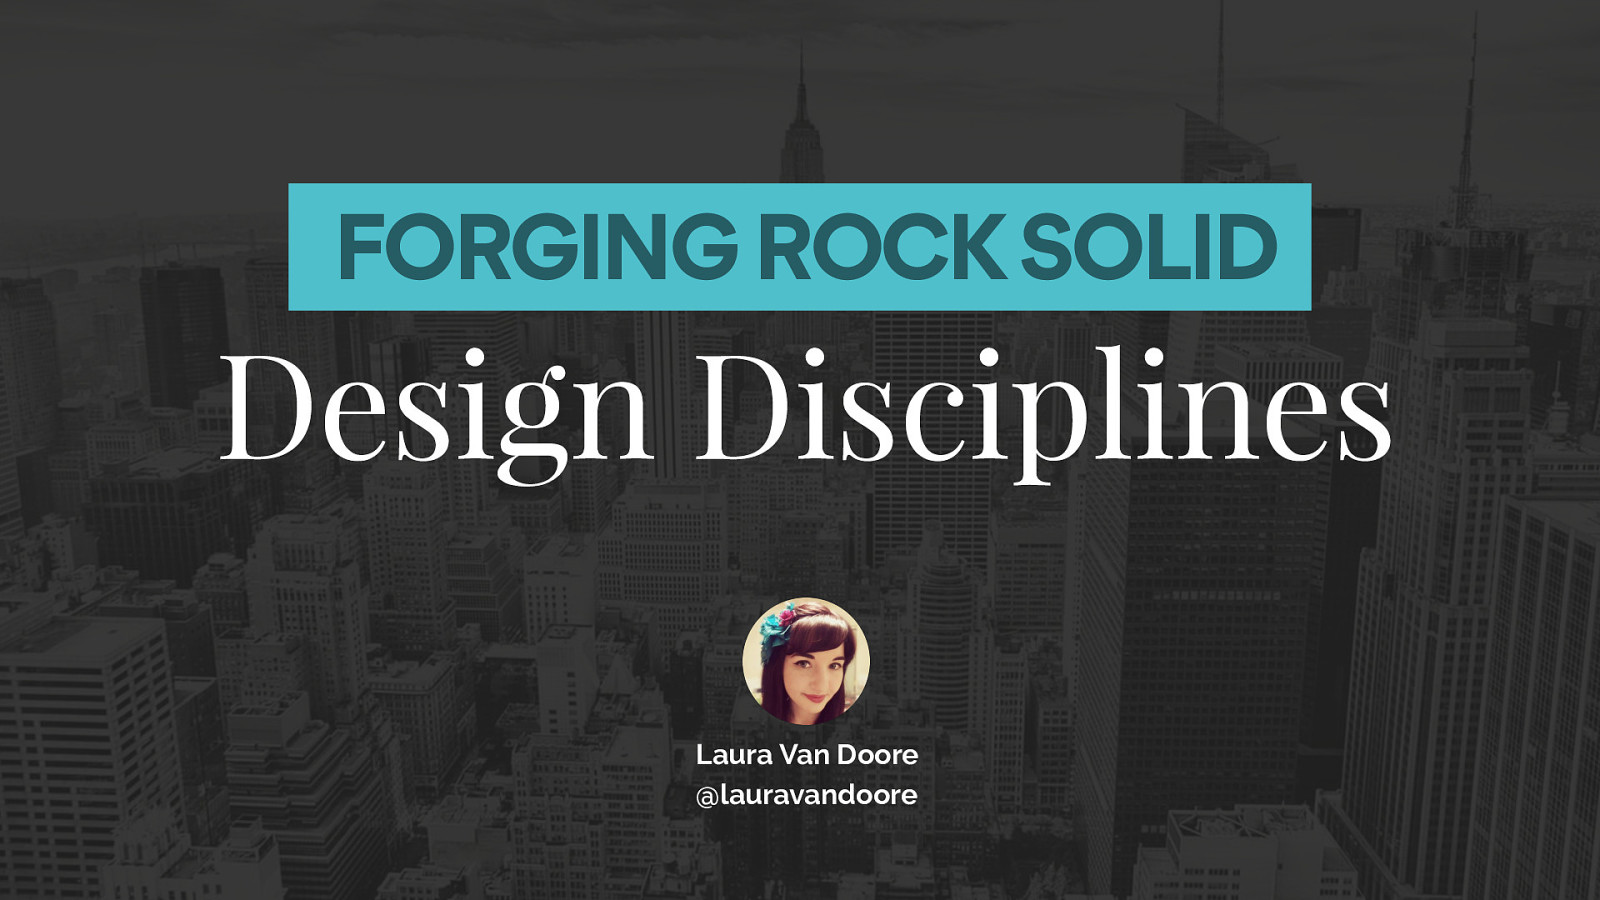 Forging rock solid design disciplines